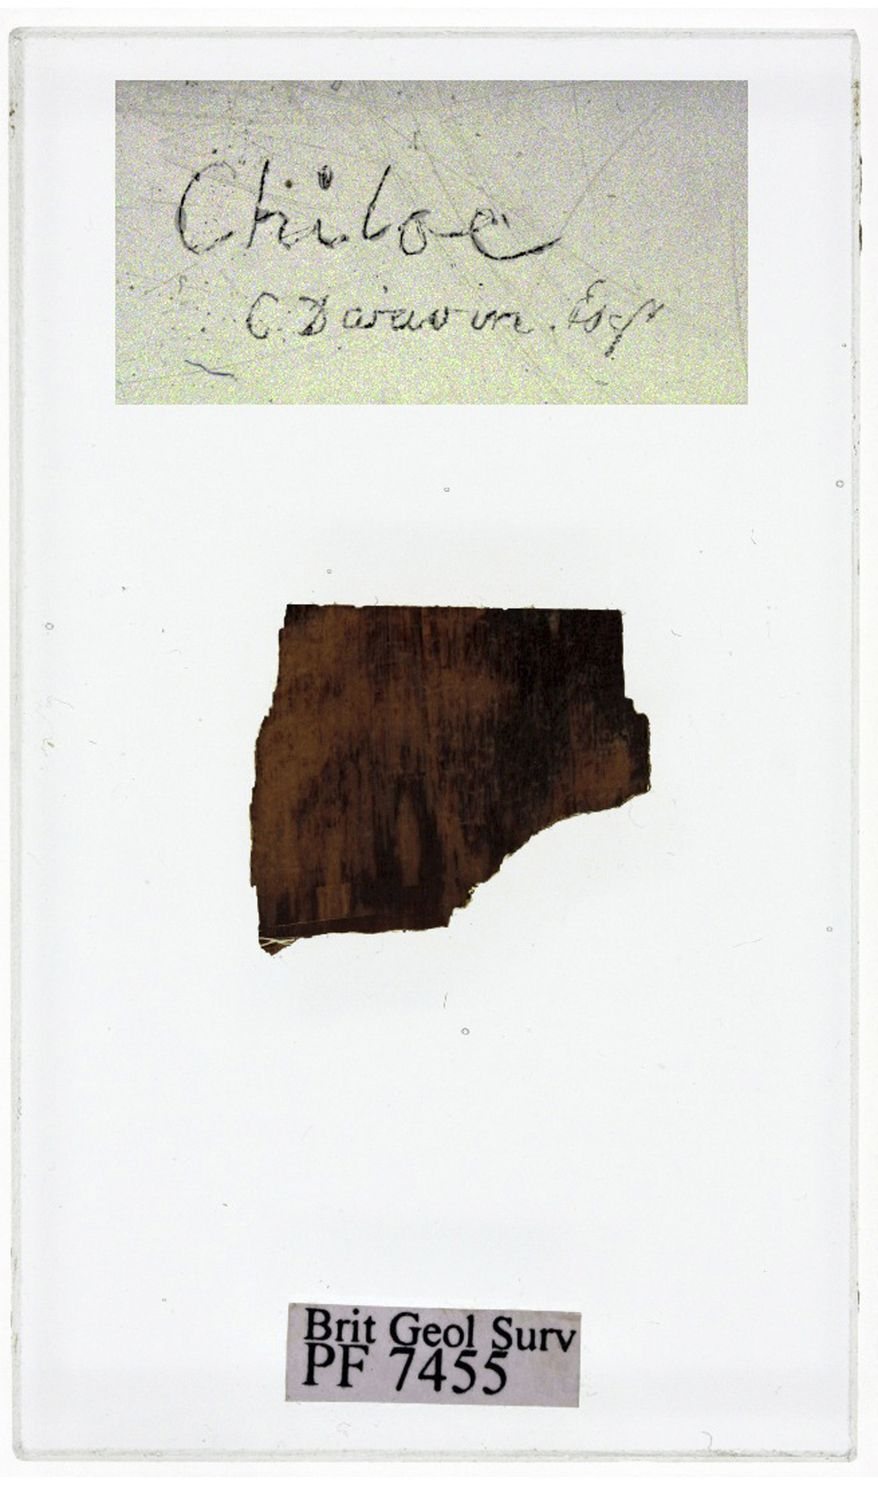 """This image made available by the Royal Holloway, University of London on Jan. 17, 2012 shows a polished section of a 40-million-year-old fossil wood collected by Charles Darwin in 1834 on Chiloe Island in South America in the course of his famous """"Voyage of the Beagle."""" (Associated Press/Royal Holloway, University of London)"""